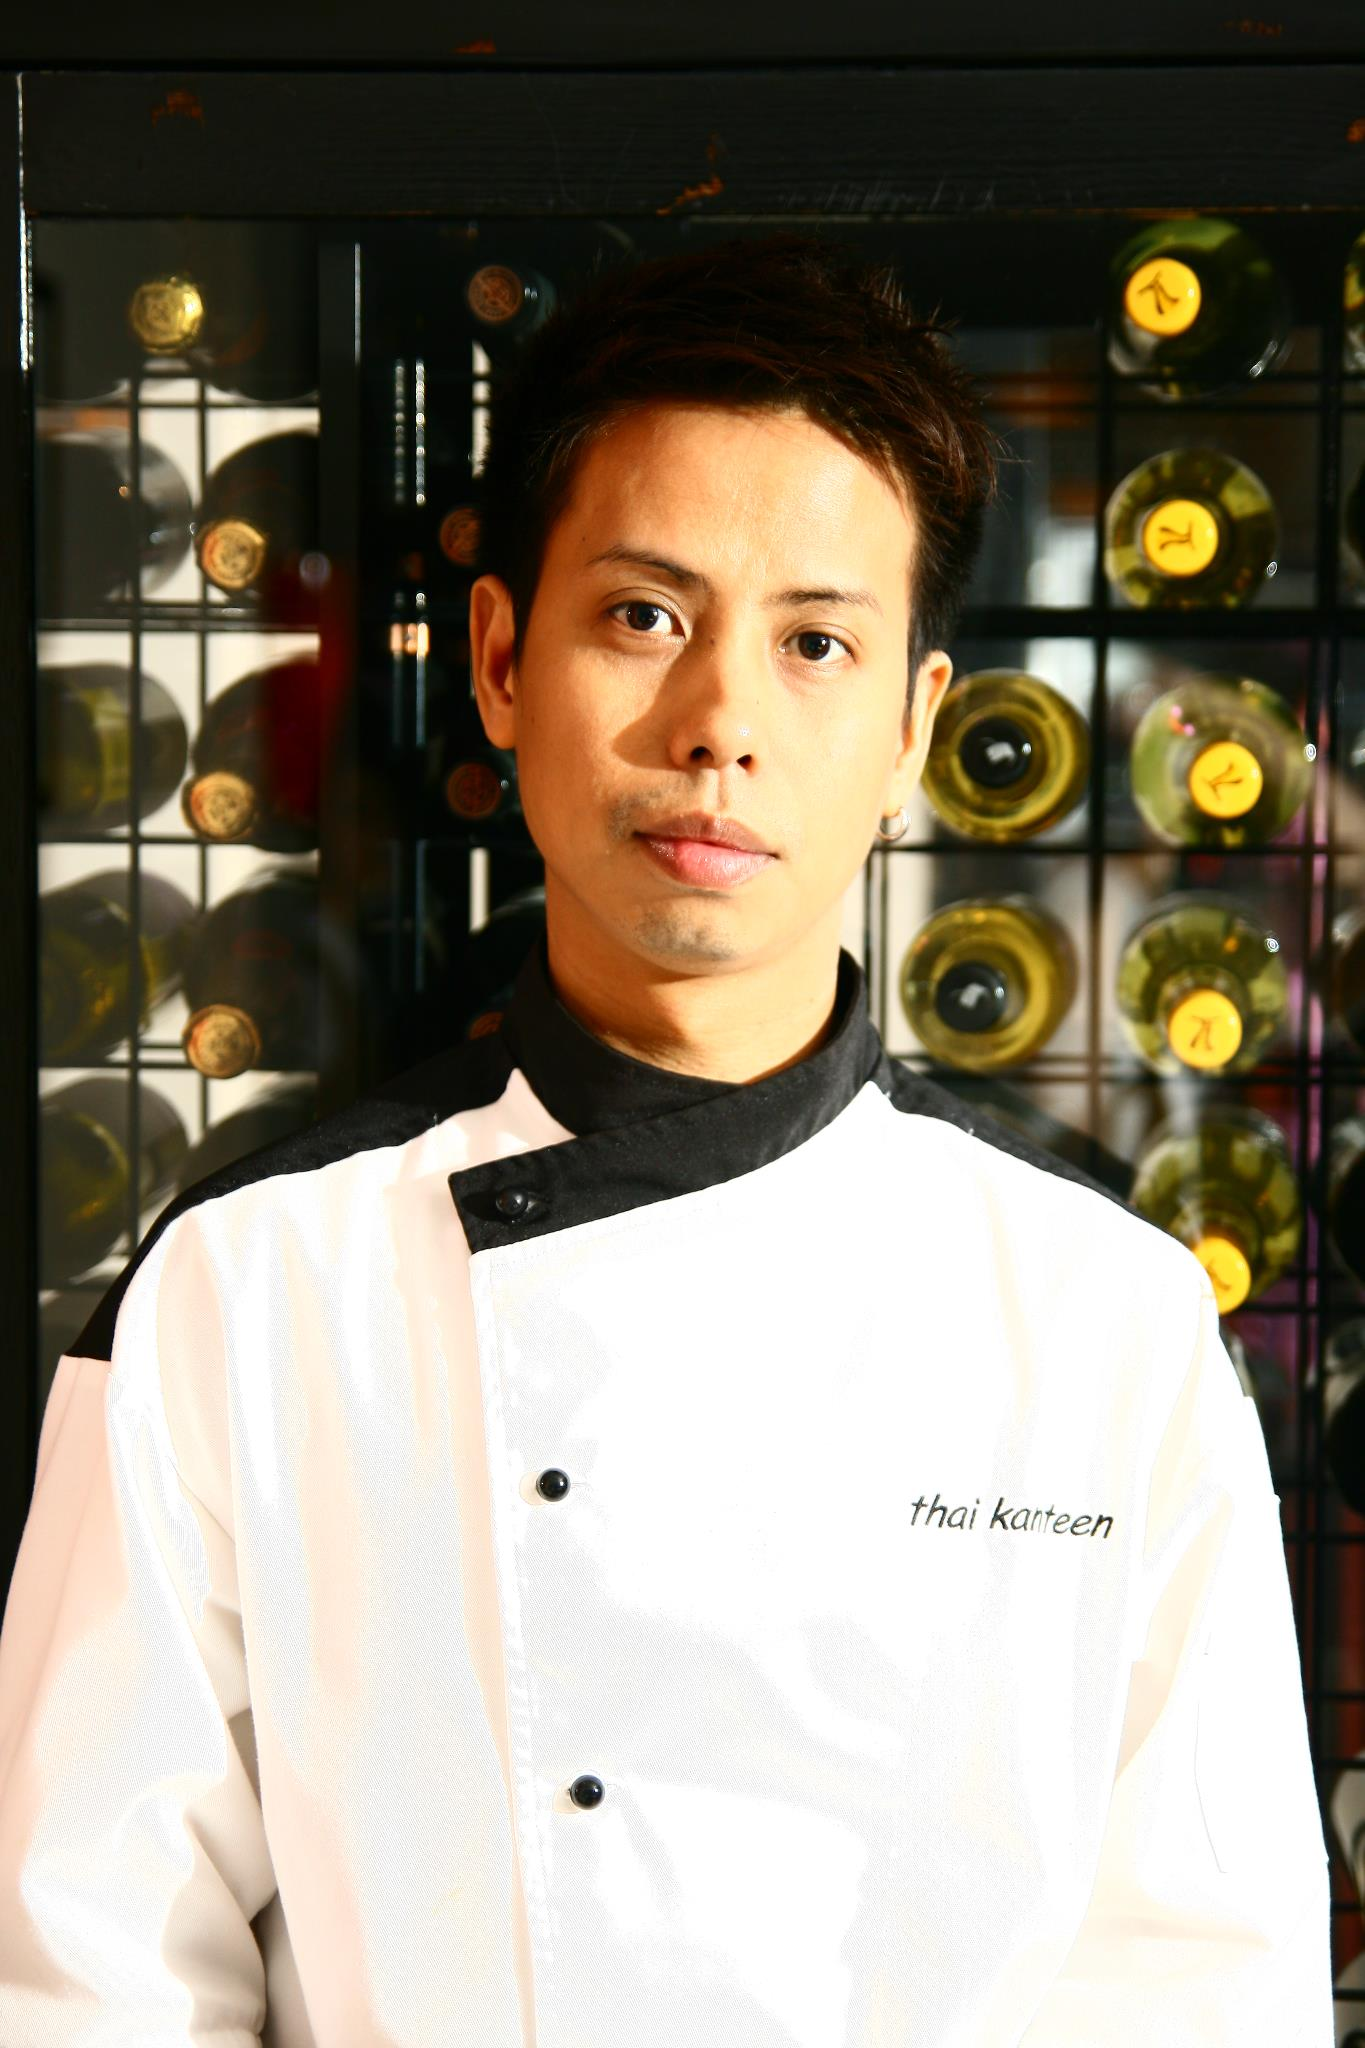 Chef Anan Inthorn